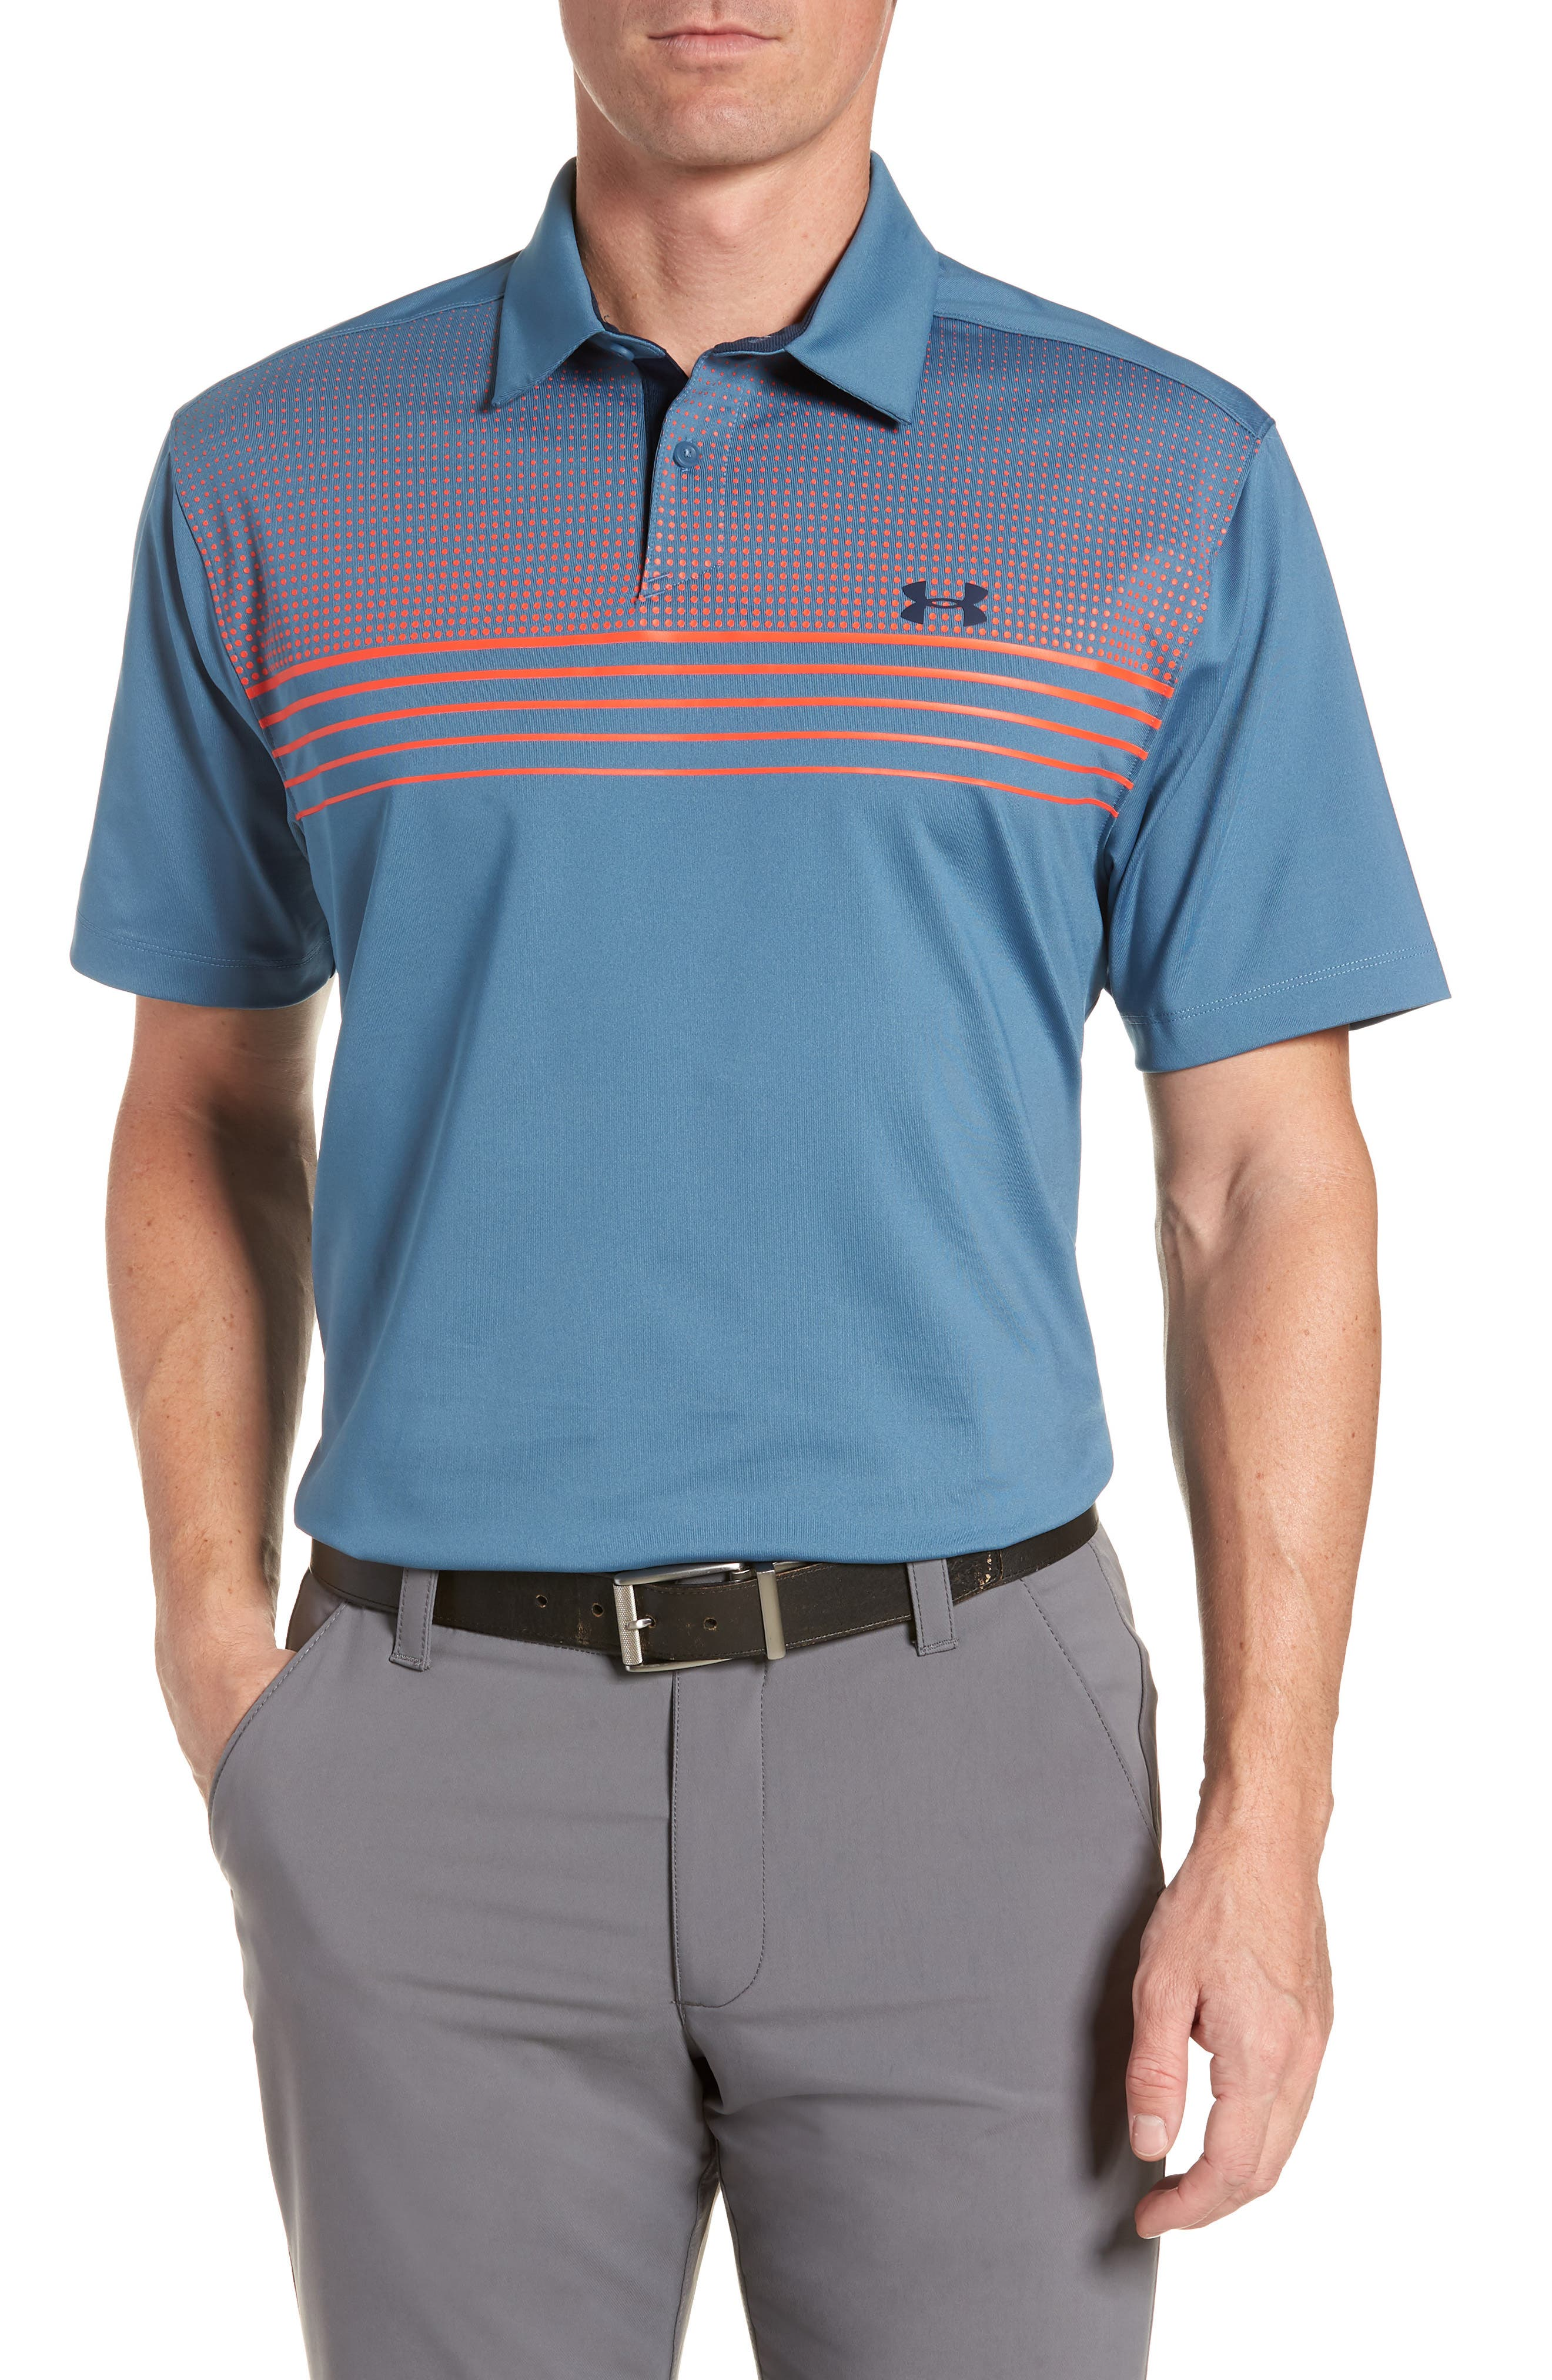 UA CoolSwitch Regular Fit Golf Polo,                             Main thumbnail 1, color,                             588 Bss Blu Neon Corl Acdmy